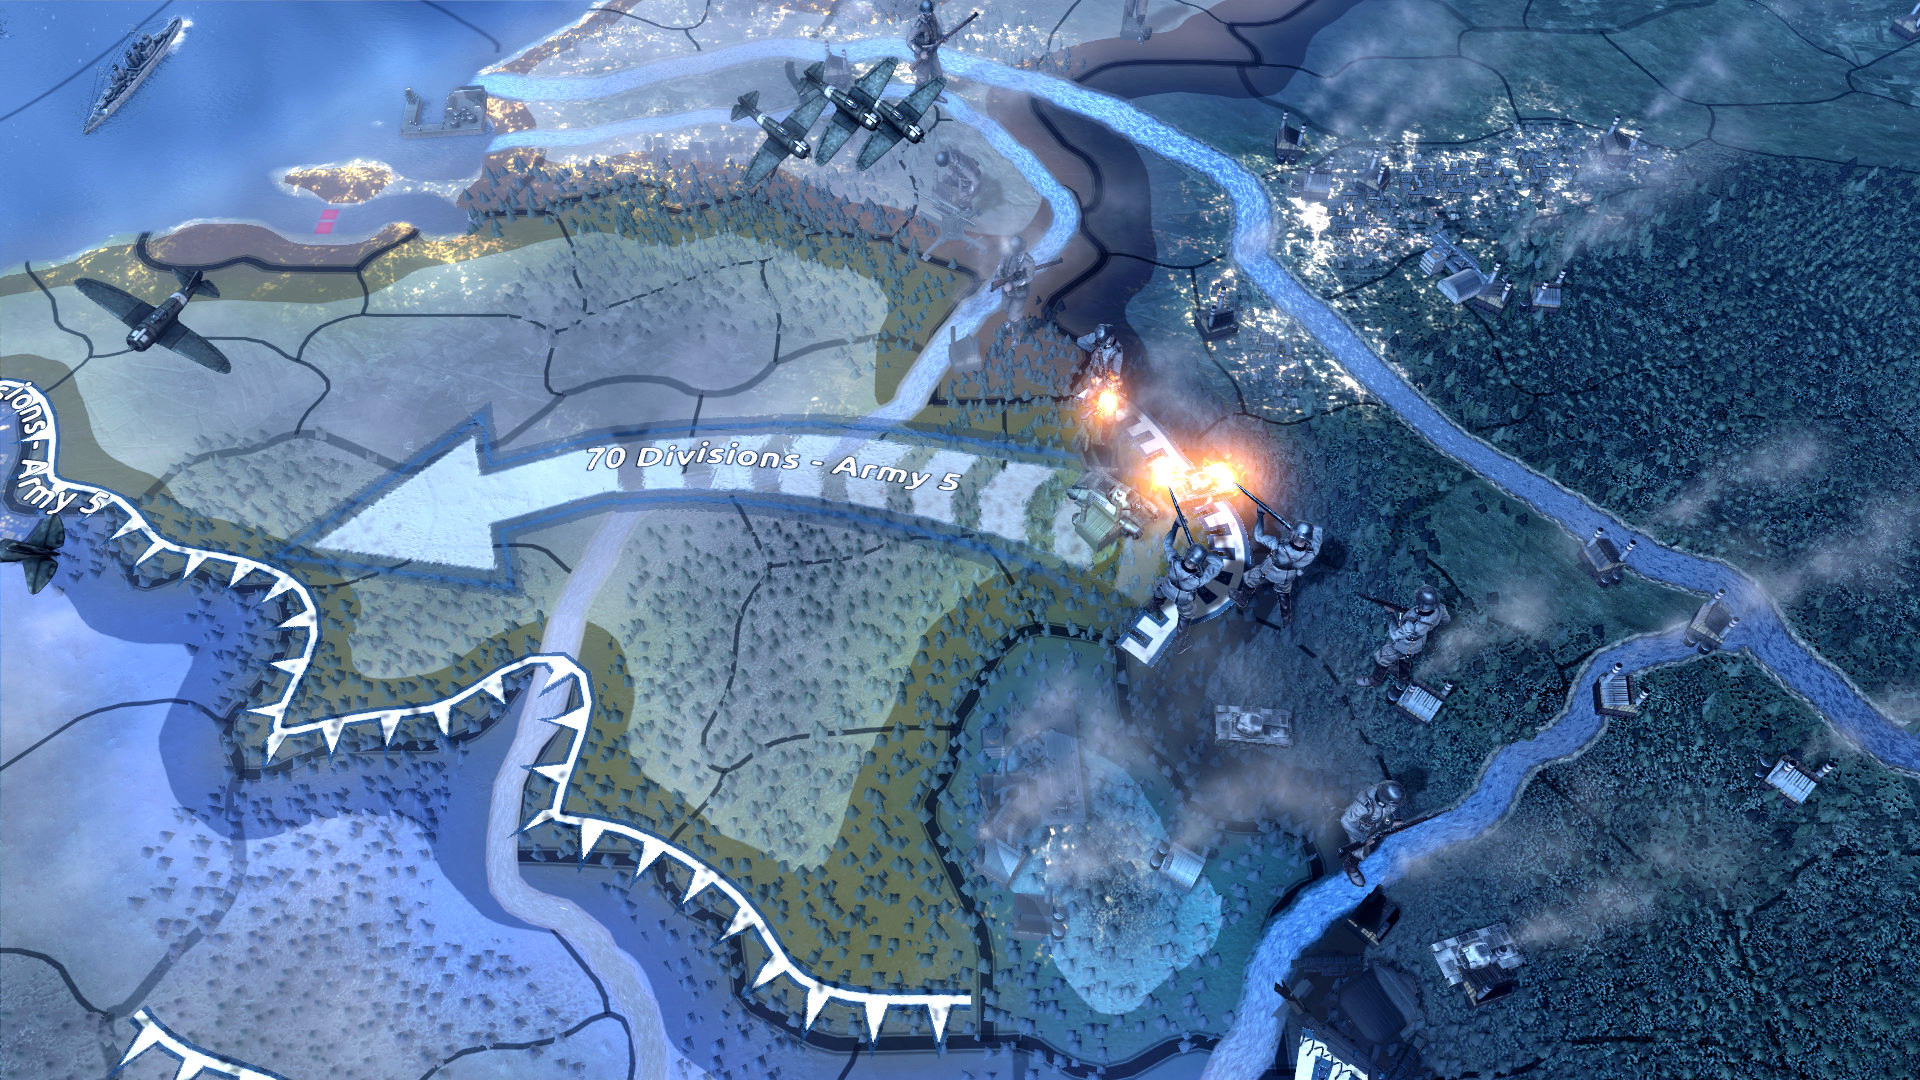 Imperator: Rome lead joins Hearts of Iron 4 team, shows off new military features